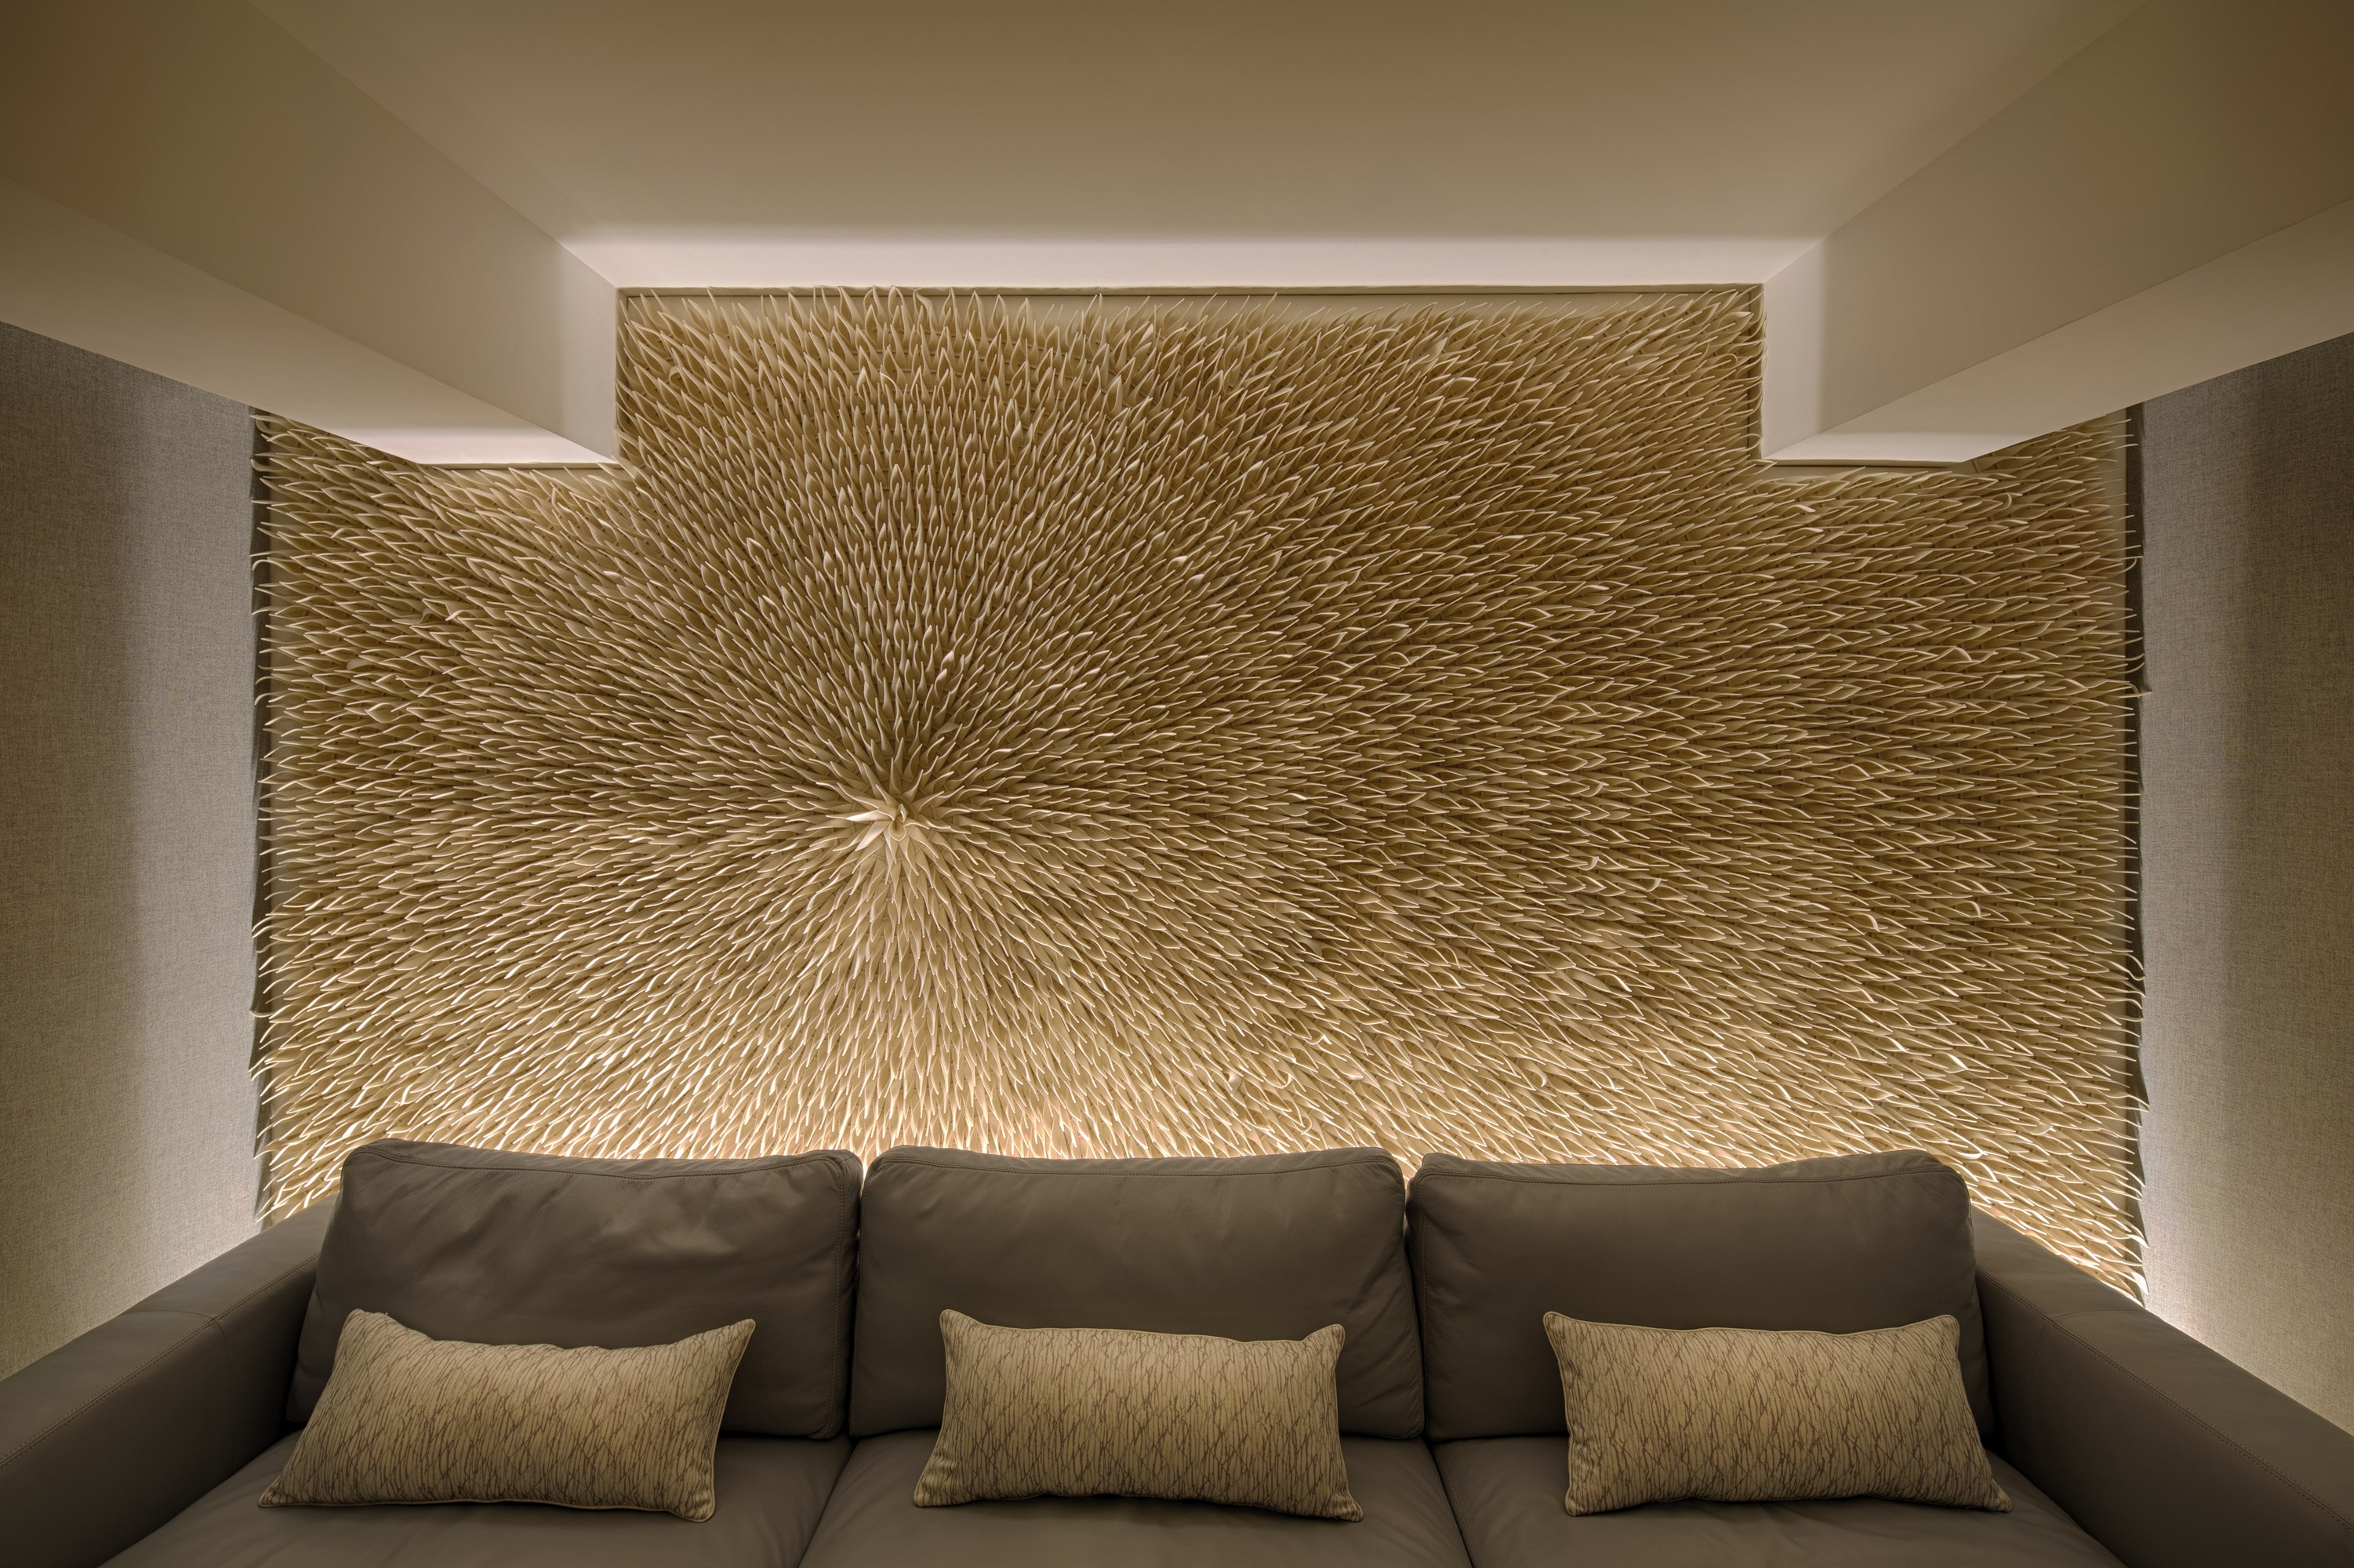 Tulip Radial Wool Felt Decorative Acoustical Panel By